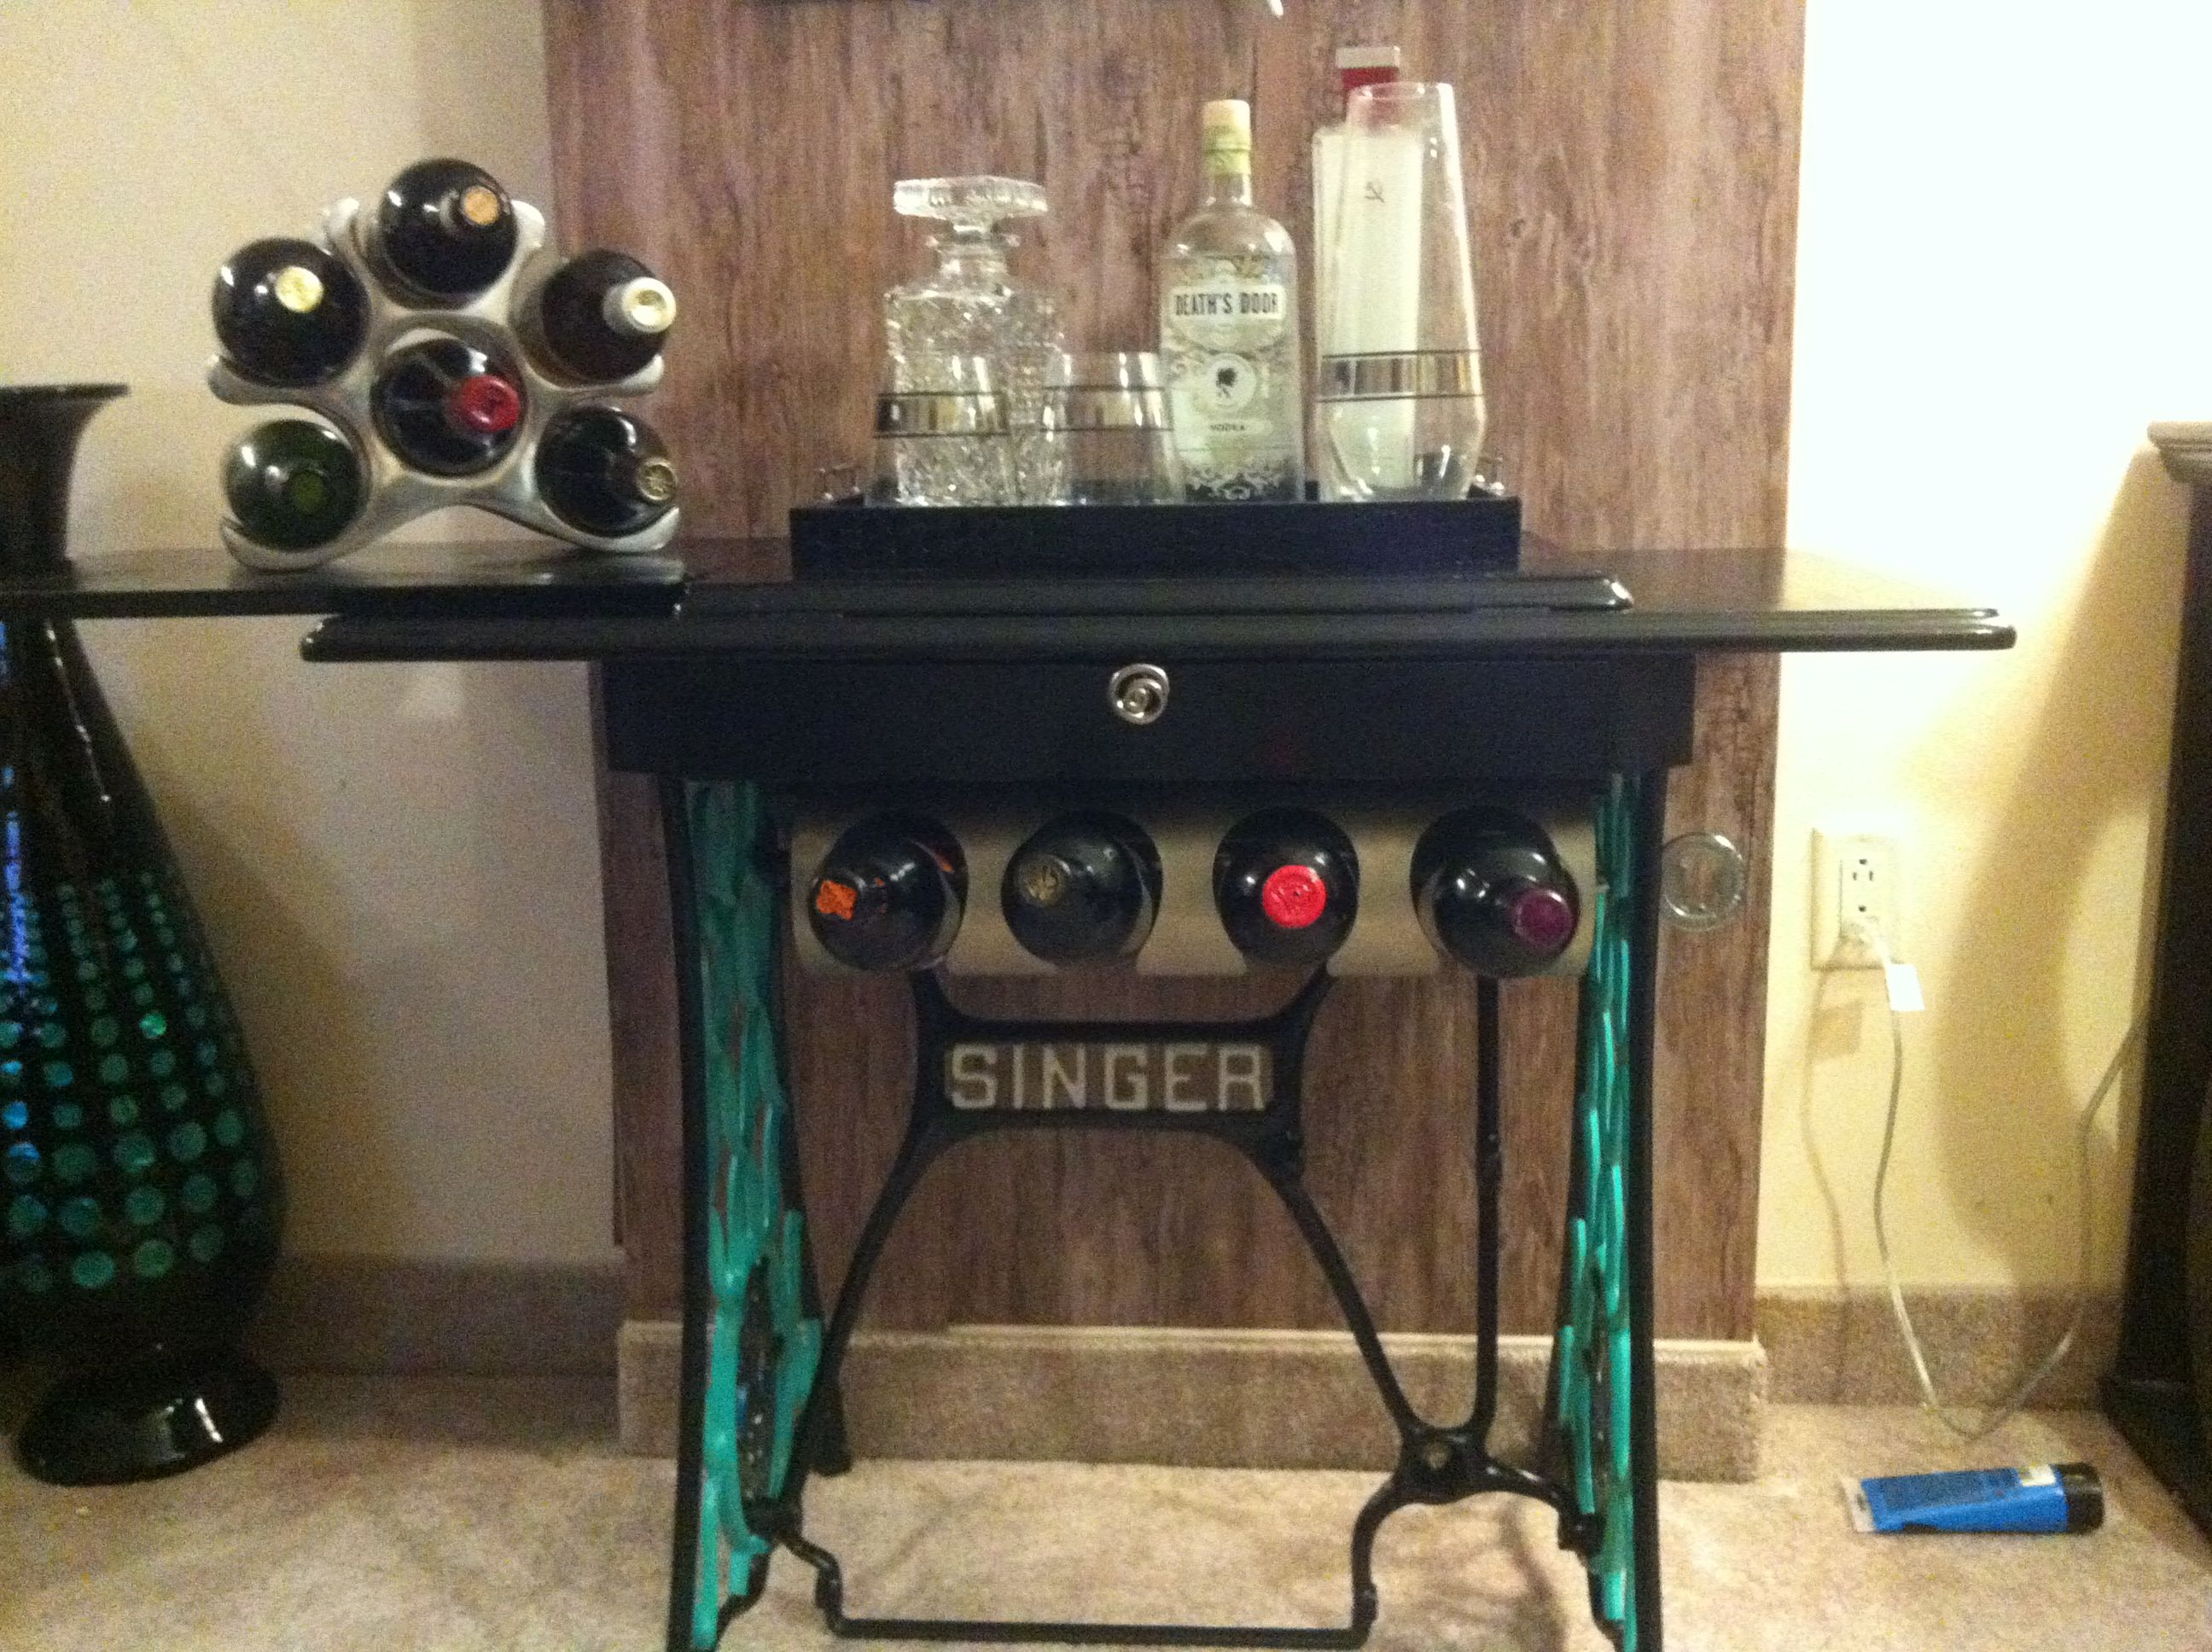 Old Singer Sewing Machine refurbished and hand painted for a mini